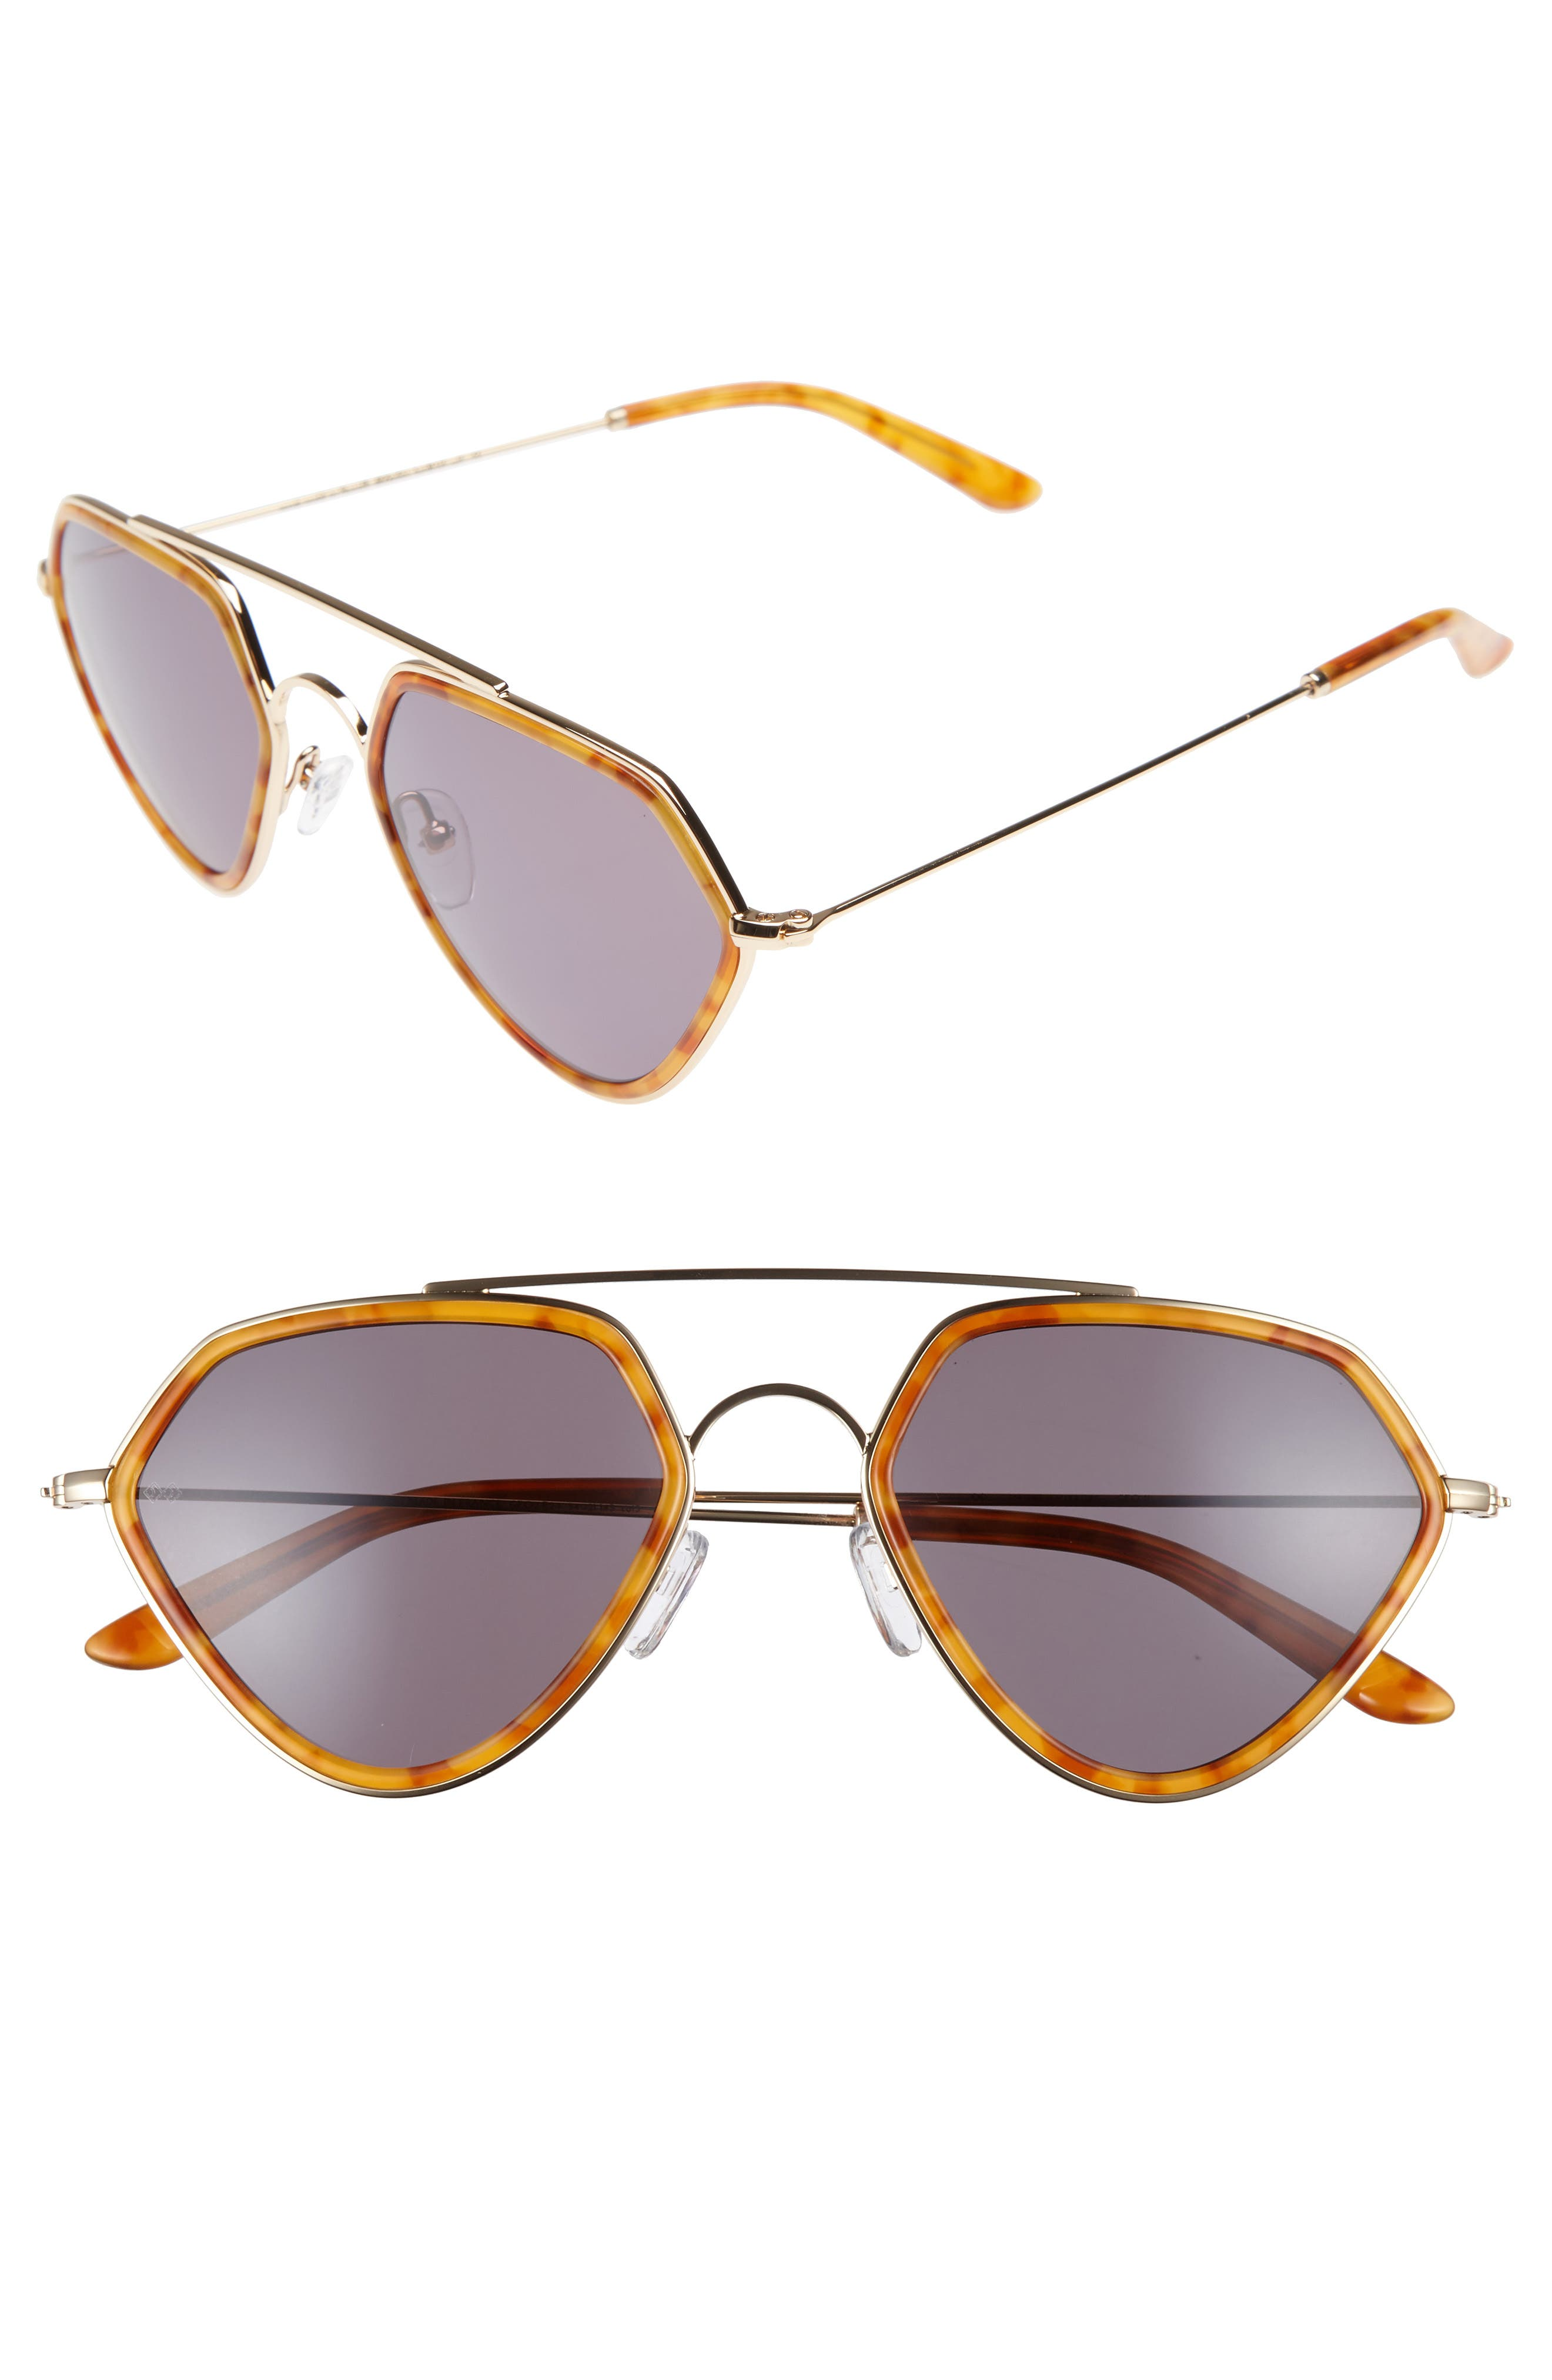 Geo 2 53mm Retro Sunglasses,                         Main,                         color, Ginger Tortoise/ Green Grey